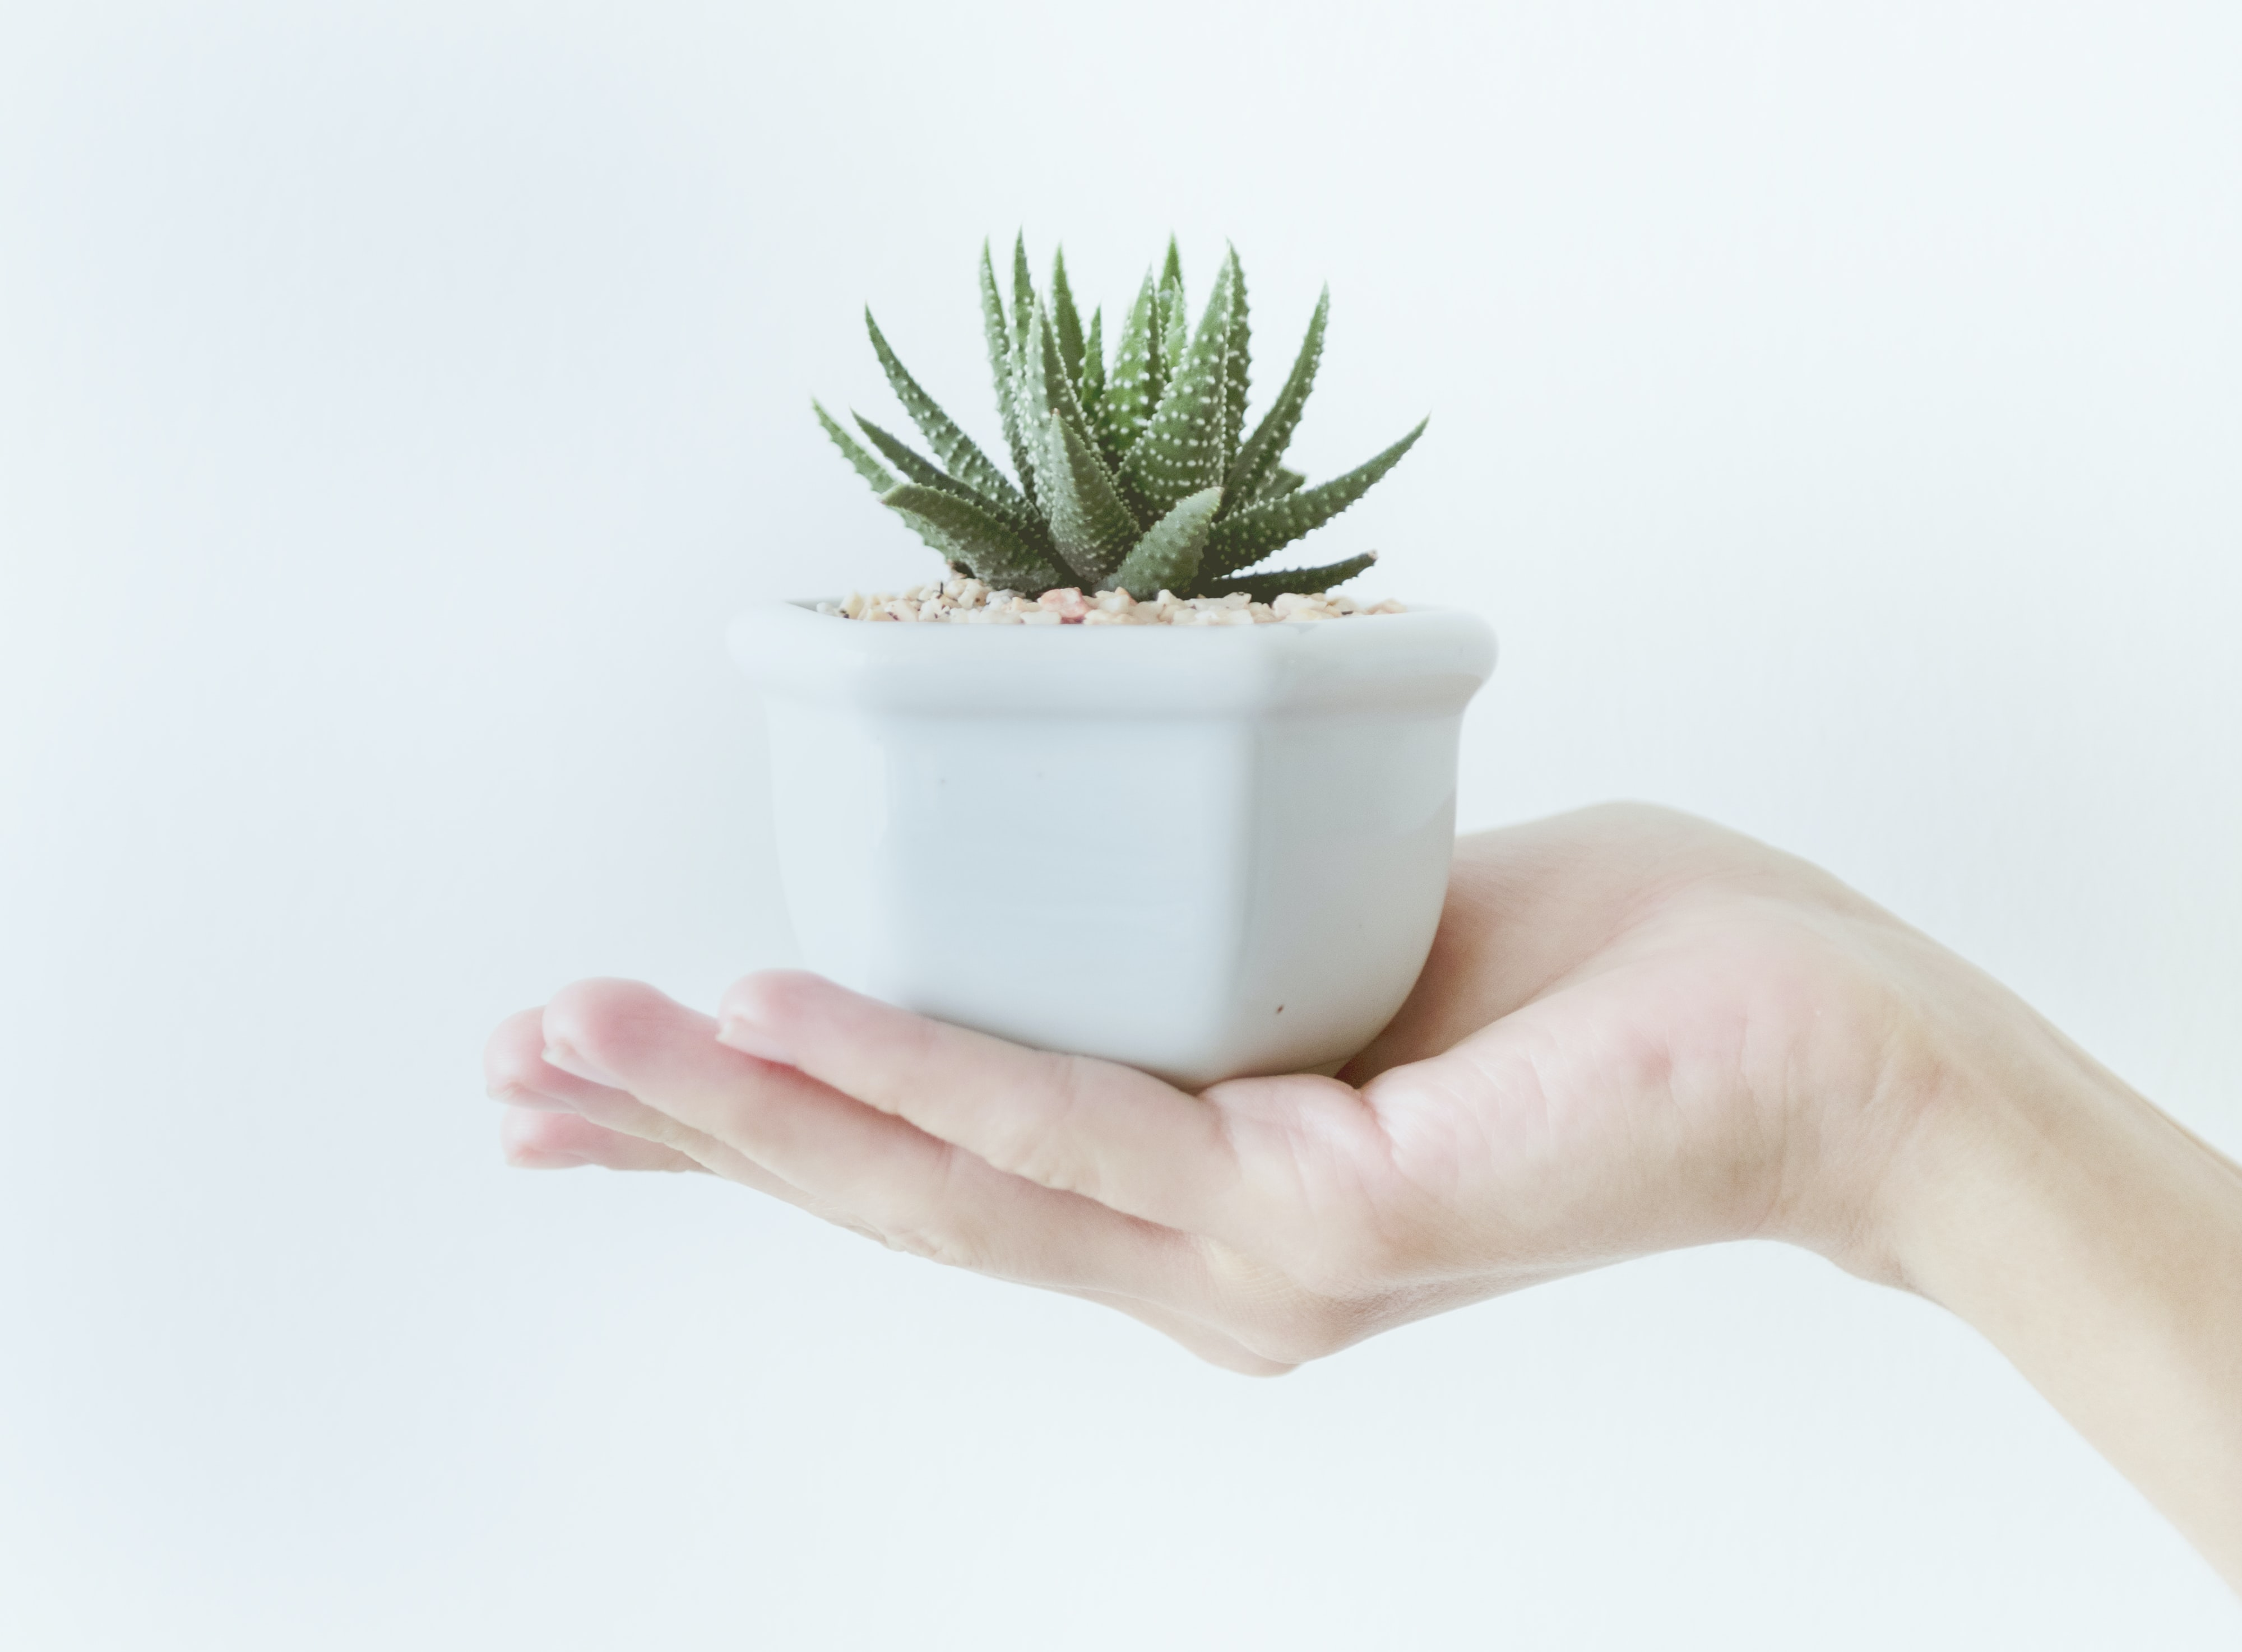 person holding potted succulent plant